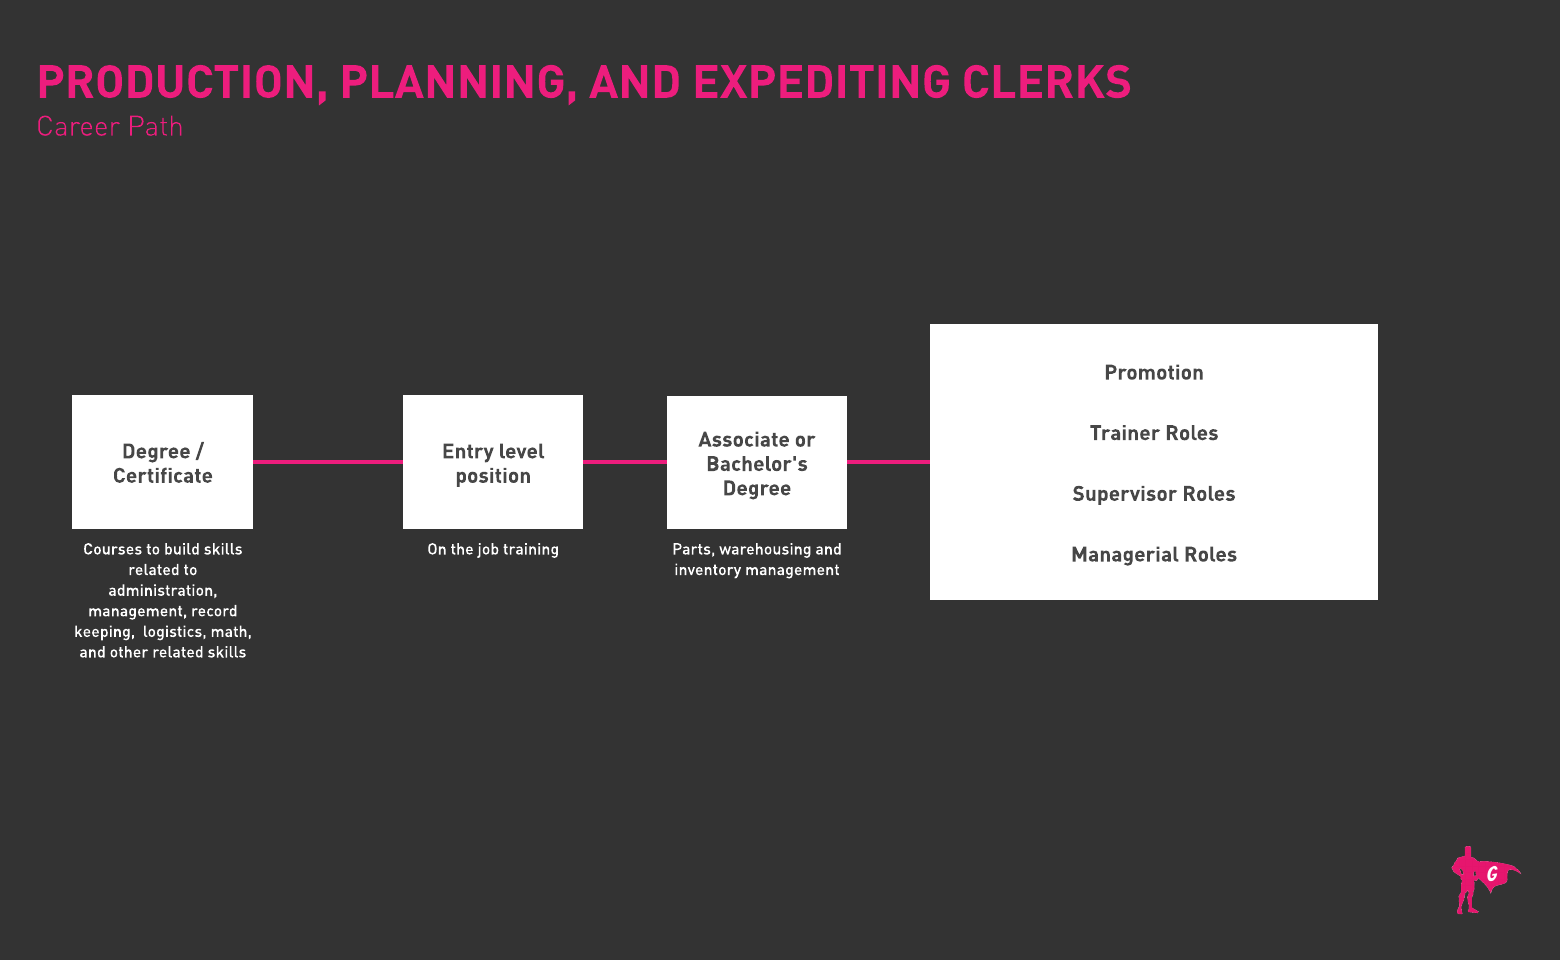 Production Planning Clerk Roadmap